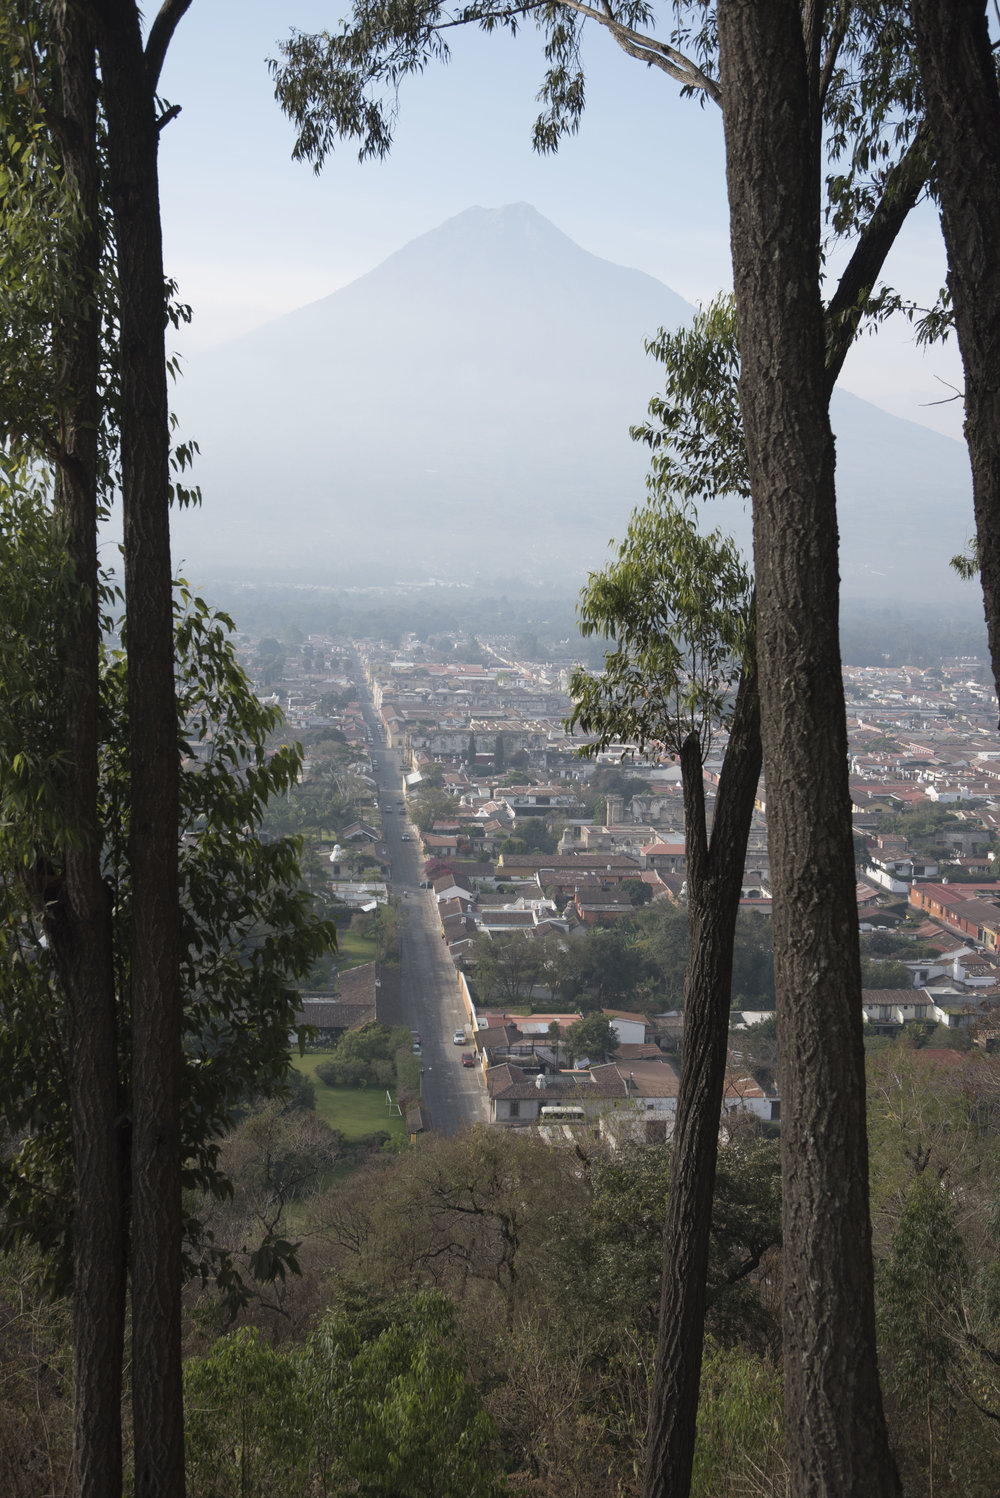 Creeping on Antigua and Volcan Agua through the trees from Cerro de la Cruz. (Antigua, Guatemala; Feb 2017)